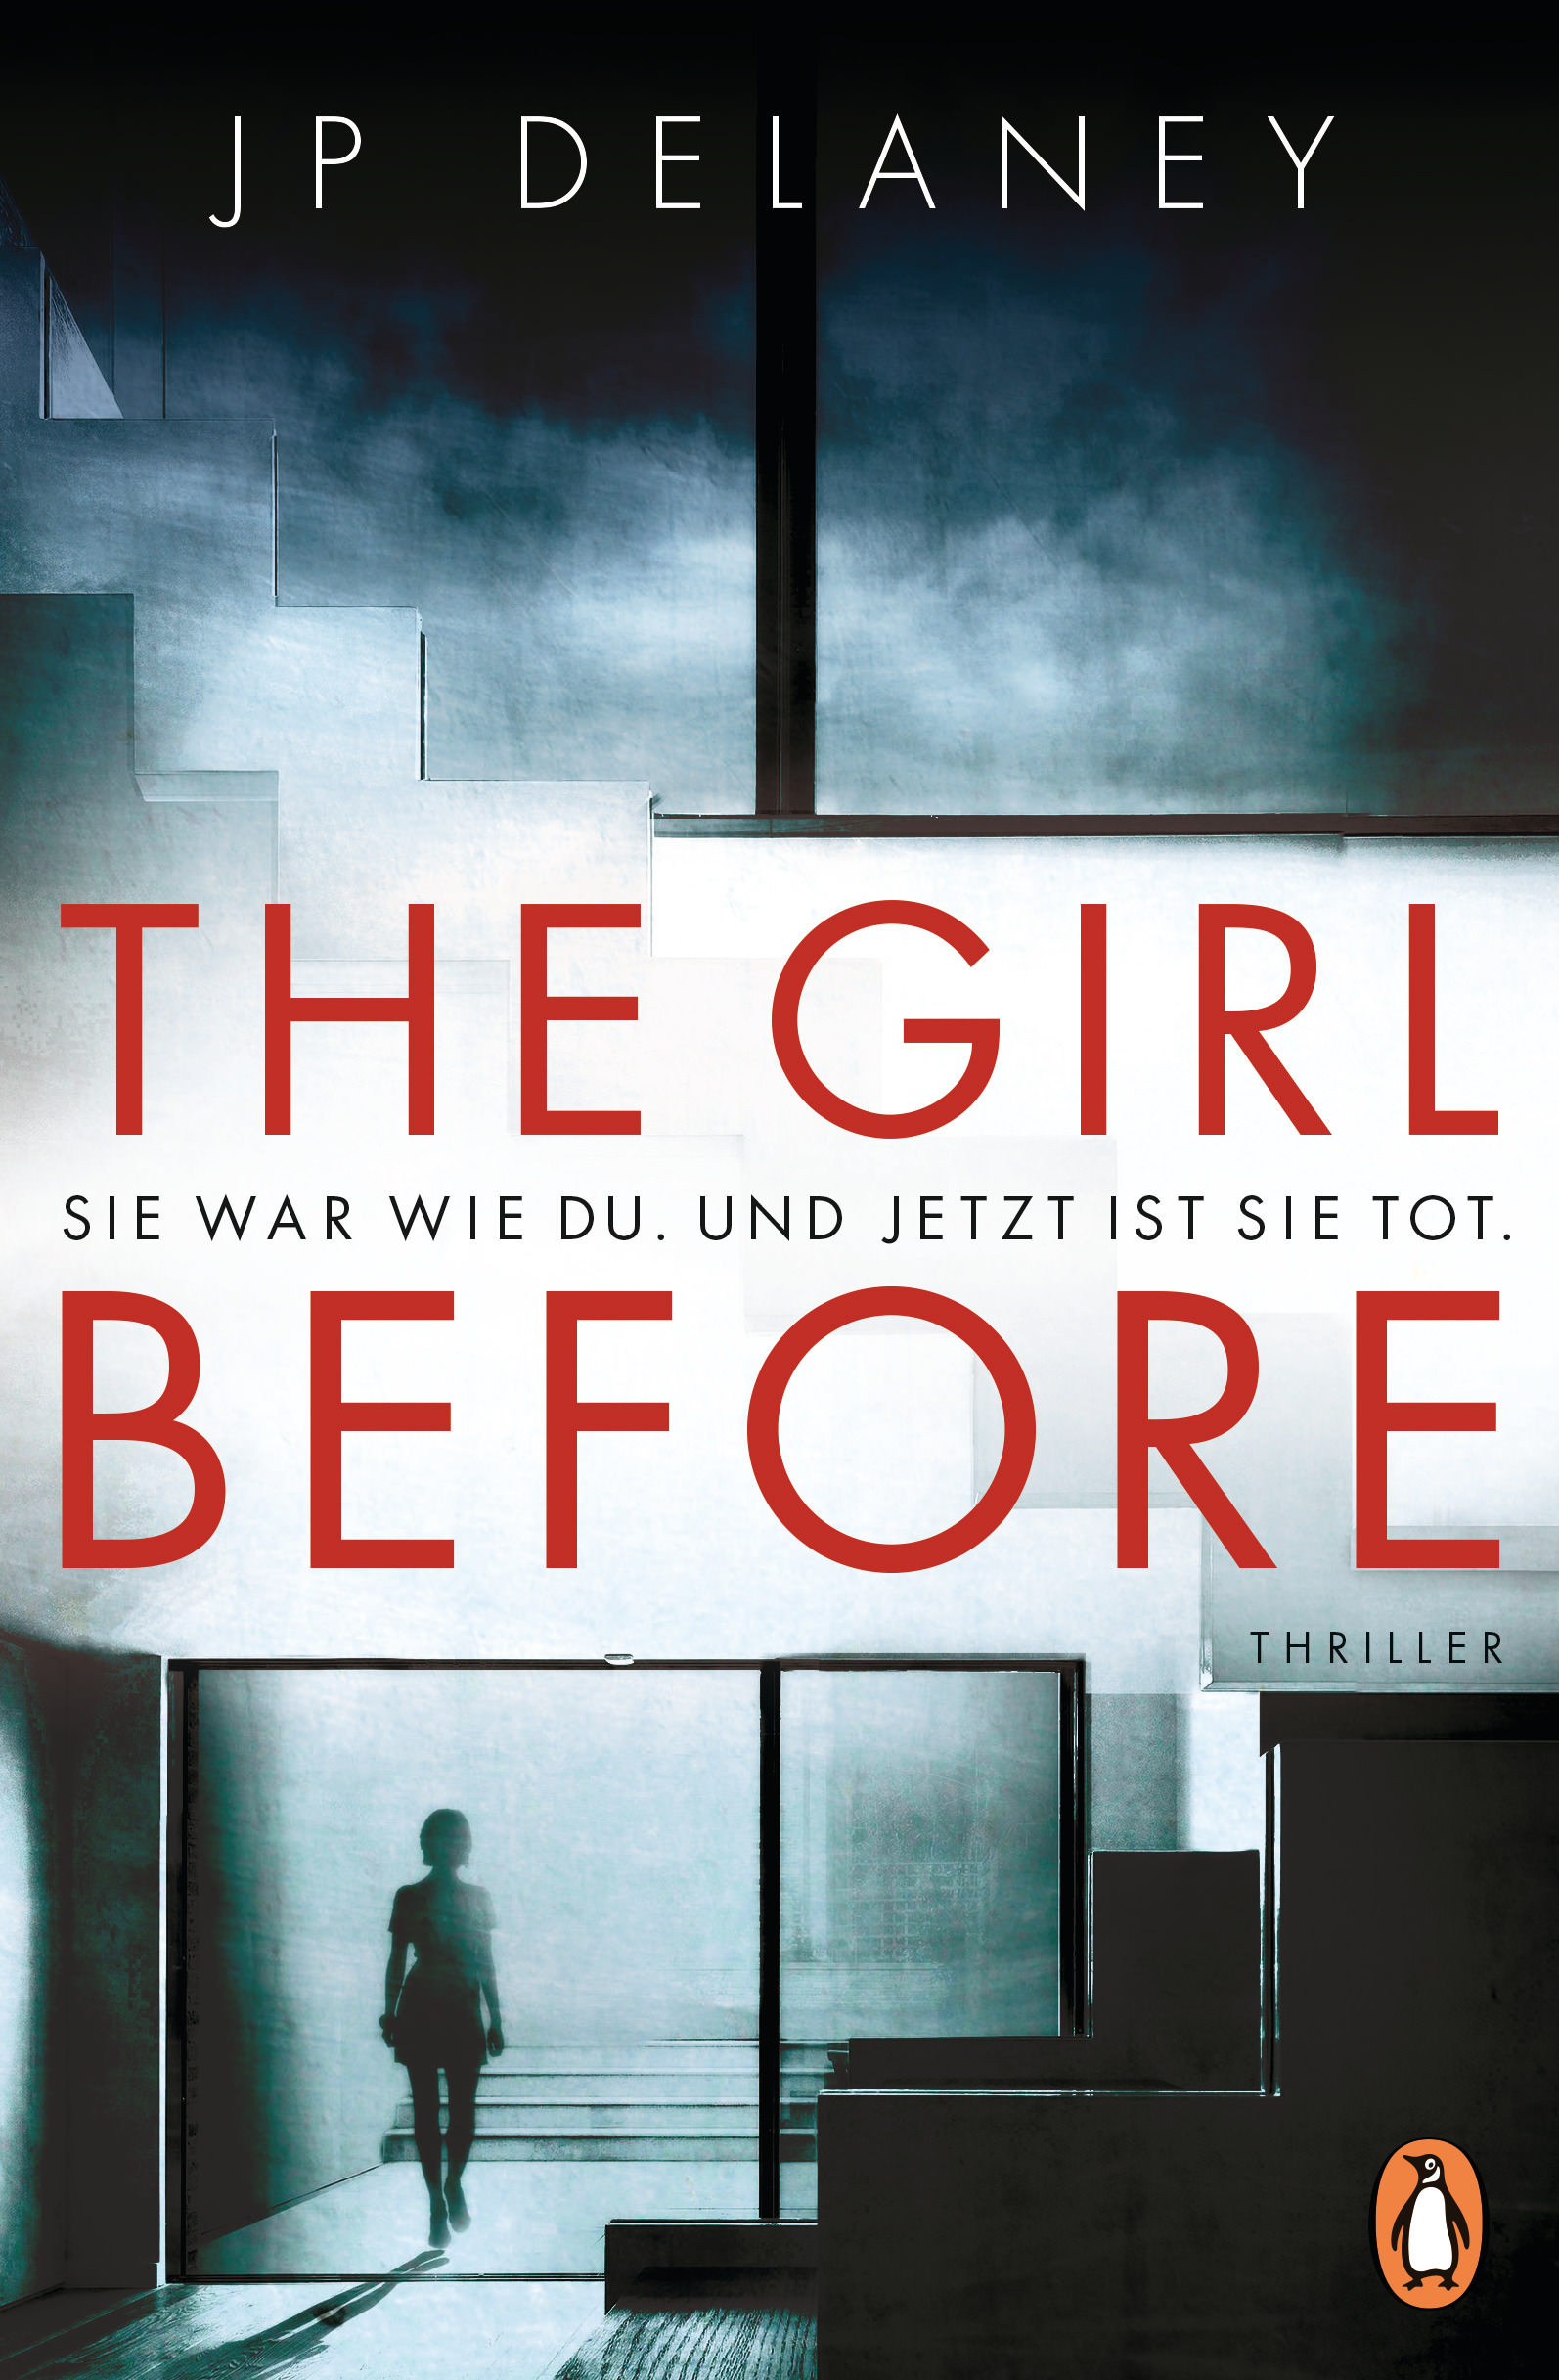 Buchcover: JP Delaney: The Girl Before. Penguin Verlag